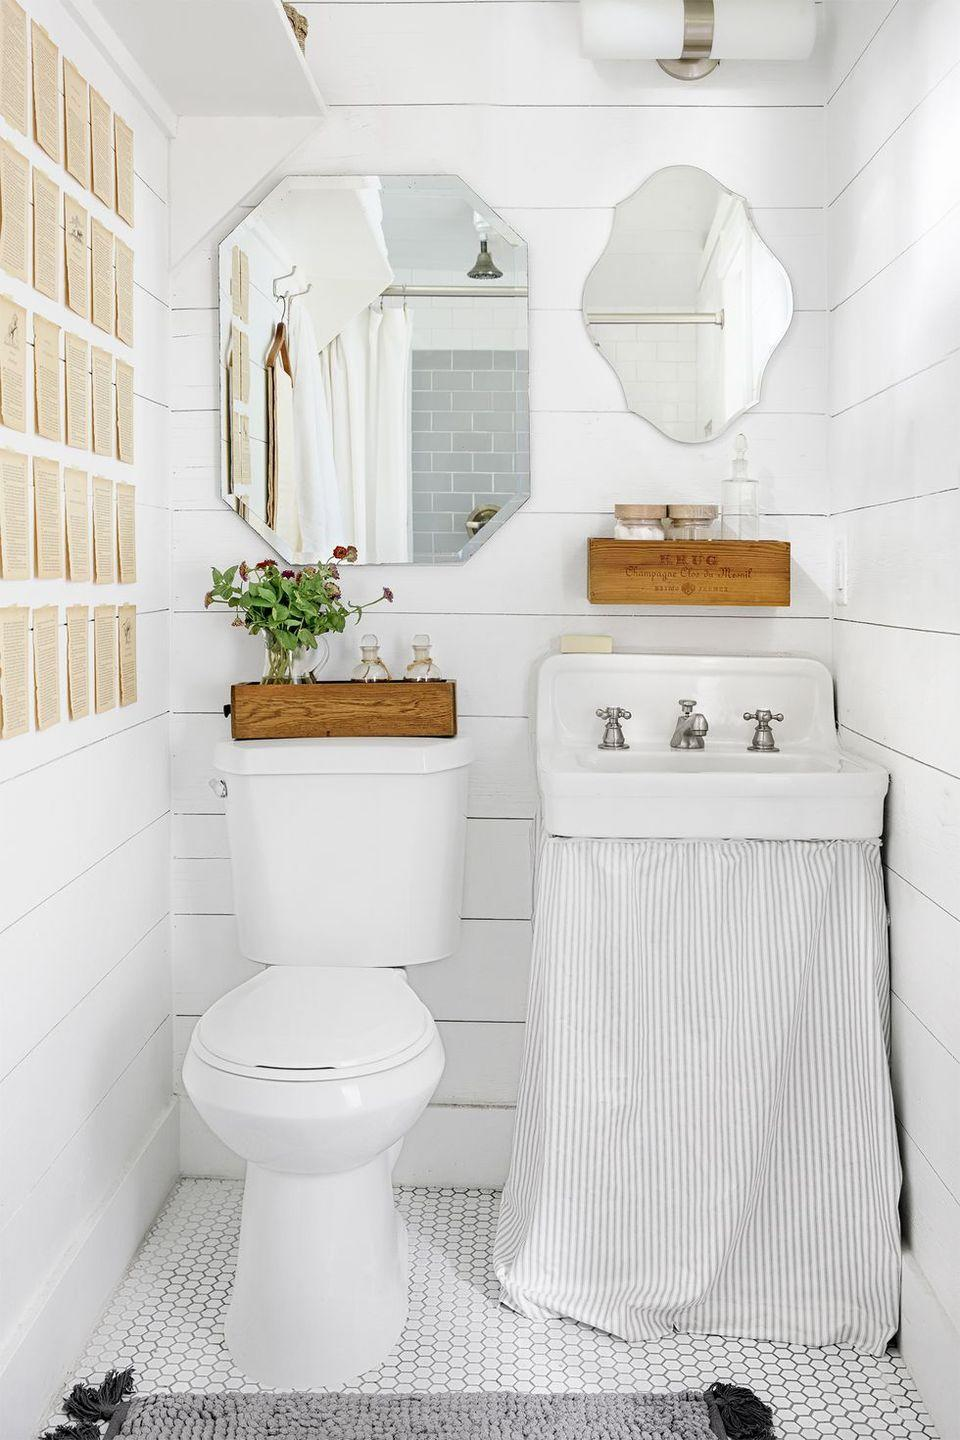 """<p>Paige simply attached a piece of striped fabric to her bathroom sink—instead of installing a bulky set of drawers—to cover up her necessities. The double mirrors also create the illusion of more space.</p><p><a class=""""link rapid-noclick-resp"""" href=""""https://www.amazon.com/Tiny-House-Living-Building-Square/dp/1440333165/?tag=syn-yahoo-20&ascsubtag=%5Bartid%7C10050.g.1887%5Bsrc%7Cyahoo-us"""" rel=""""nofollow noopener"""" target=""""_blank"""" data-ylk=""""slk:SHOP TINY HOUSE BOOKS"""">SHOP TINY HOUSE BOOKS</a></p>"""